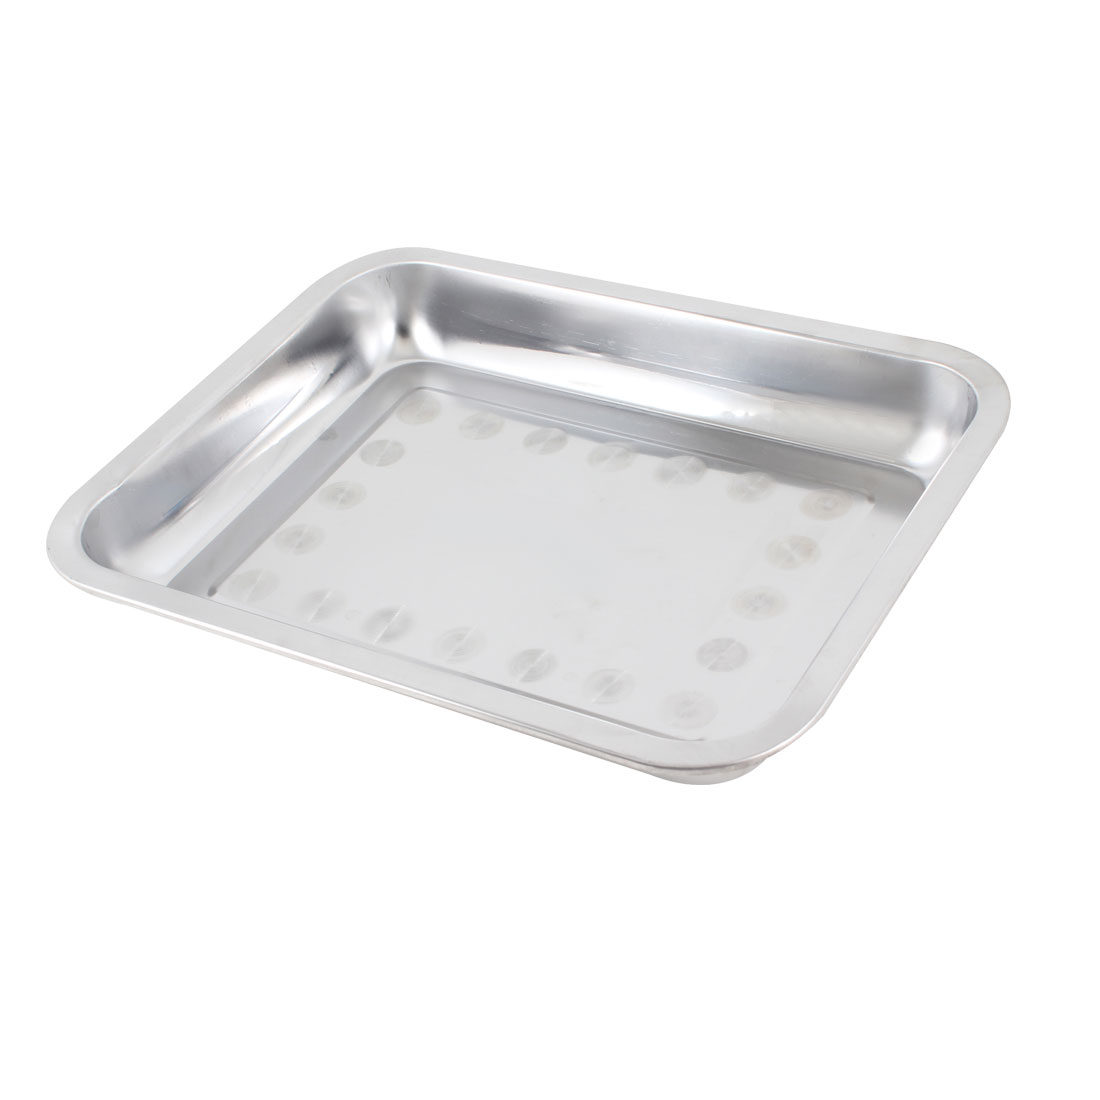 31cm x 26cm Rectangle Stainless Steel Food Medicine Plate Tray